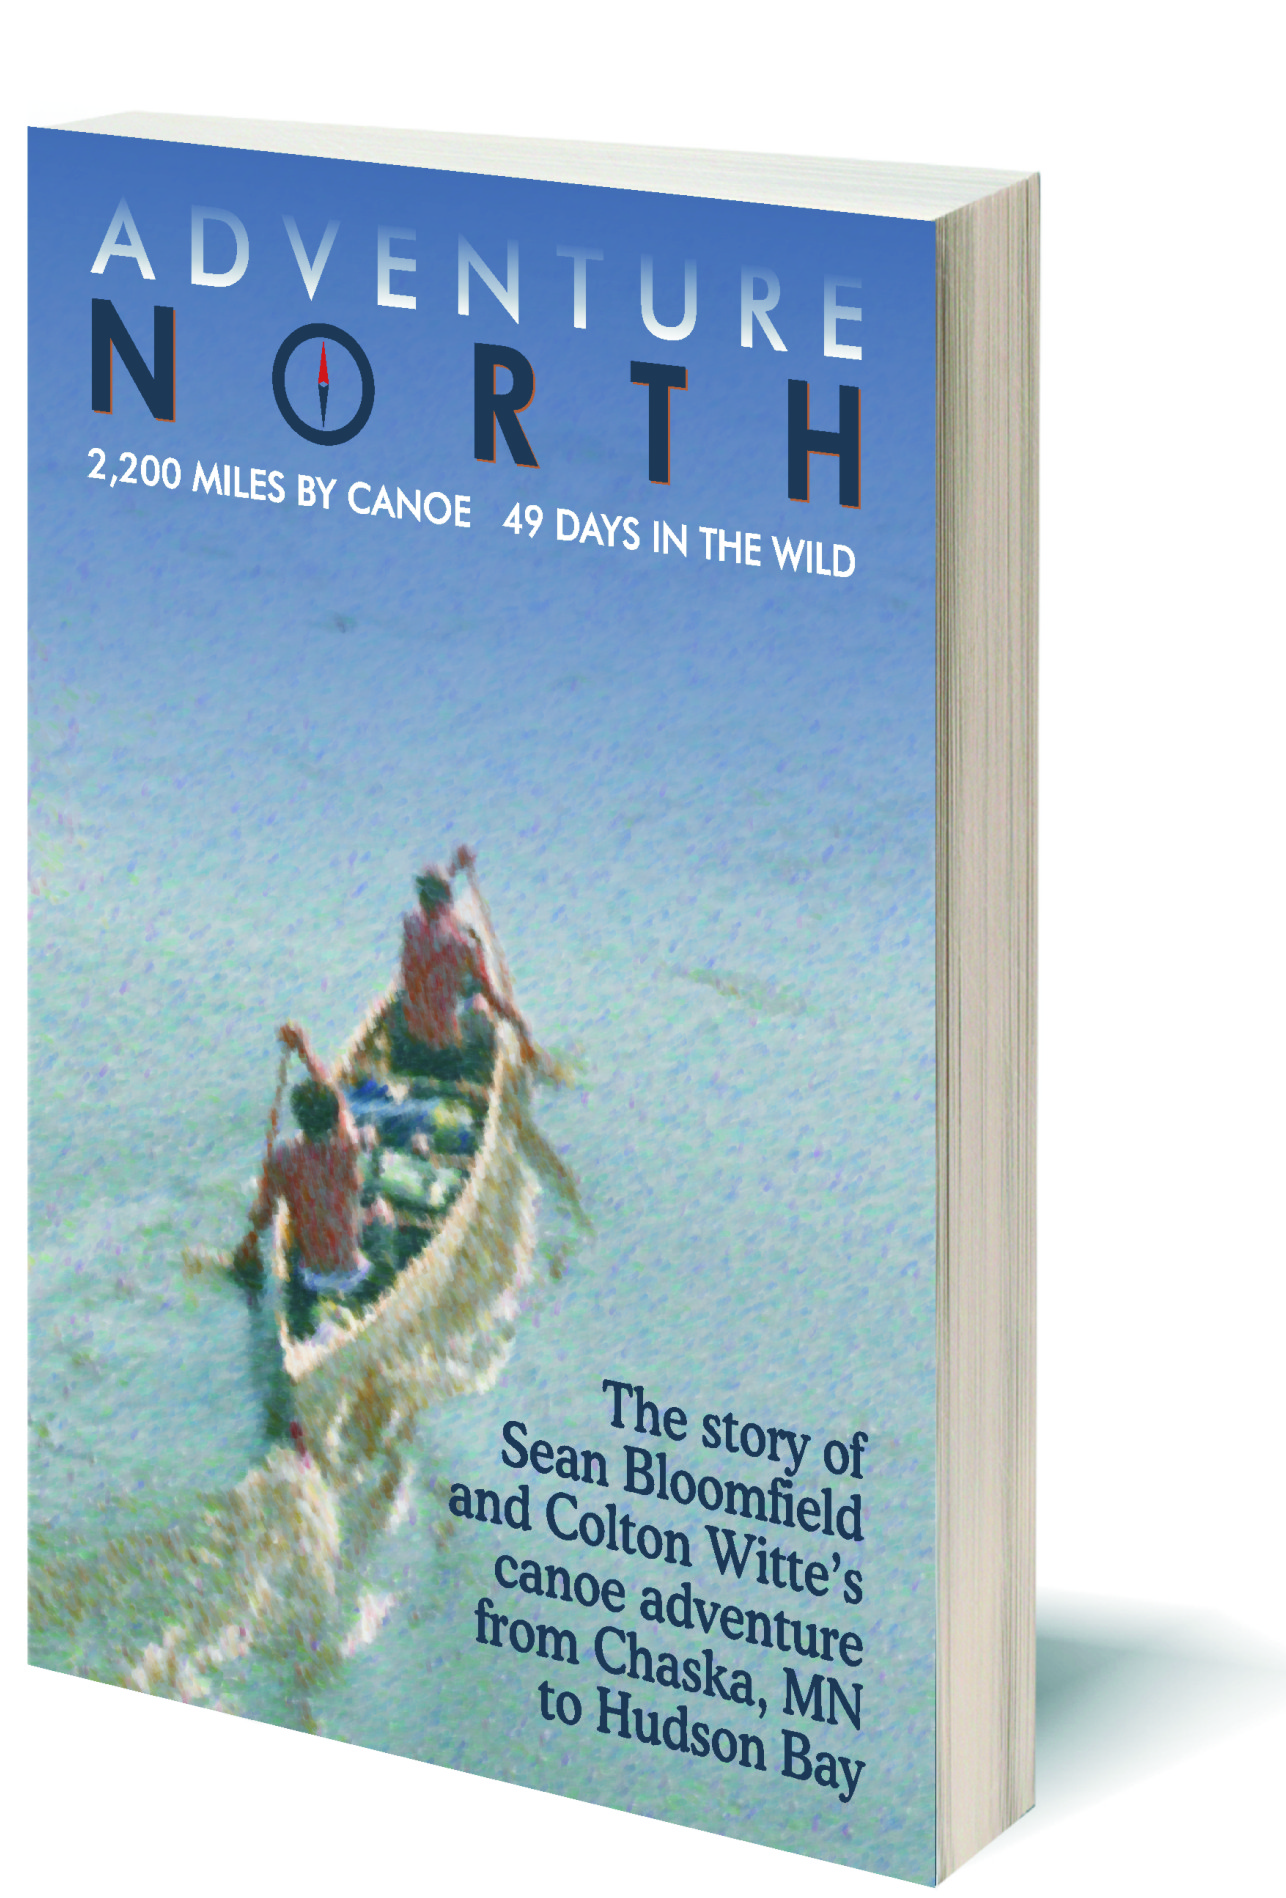 Adventure North cover released